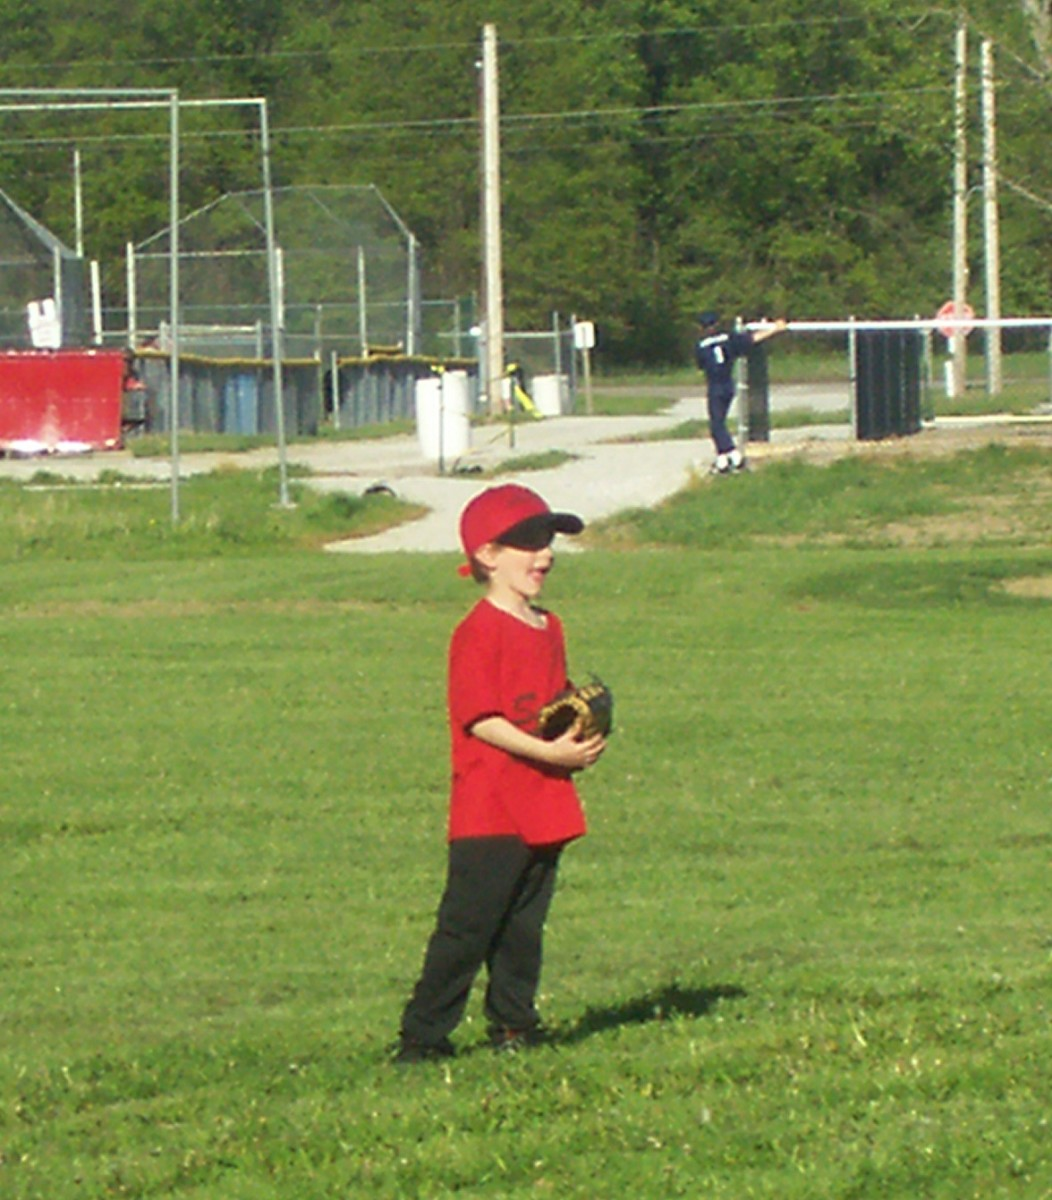 Boredom is the biggest reason young players lose interest in baseball.